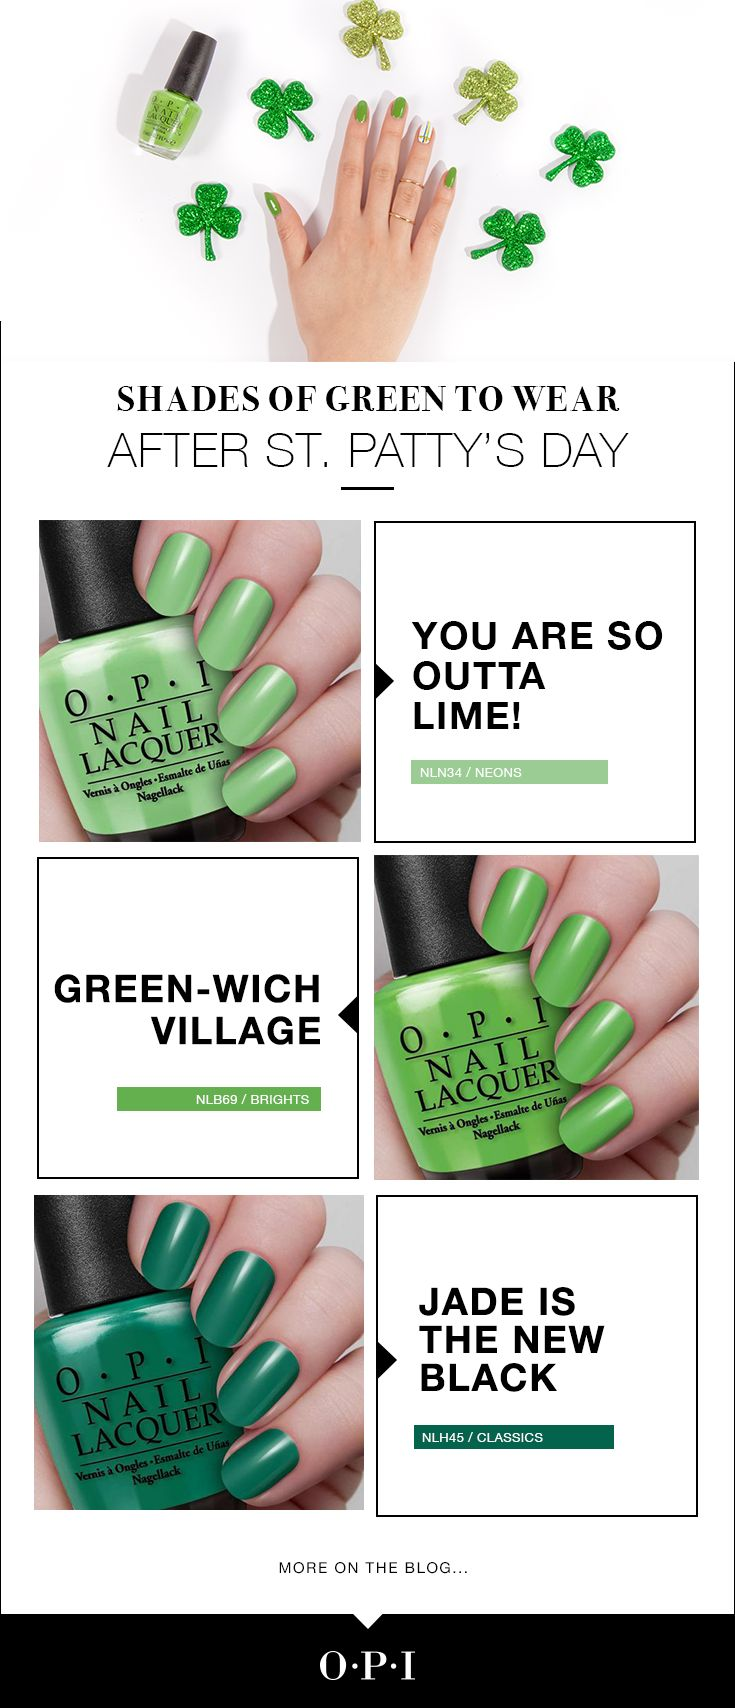 25 best A Green Scene images on Pinterest | Opi nails, Chic nails ...